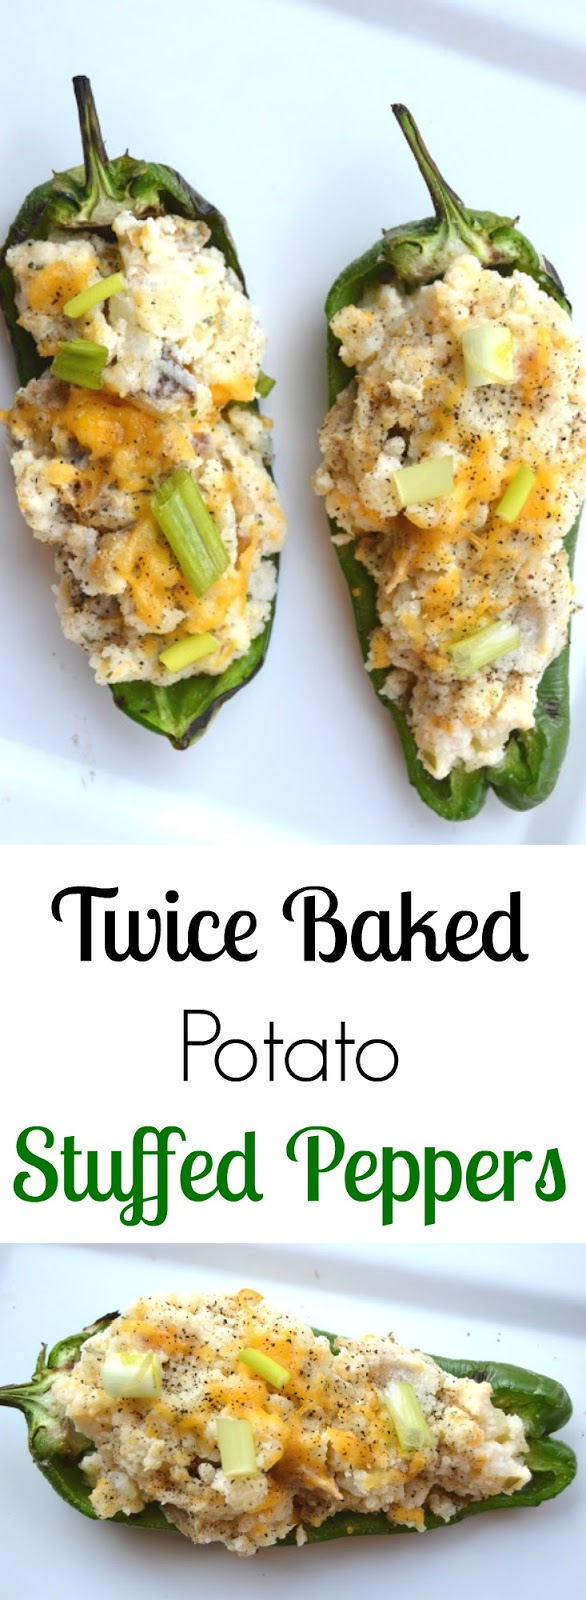 Twice Baked Potato Stuffed Peppers